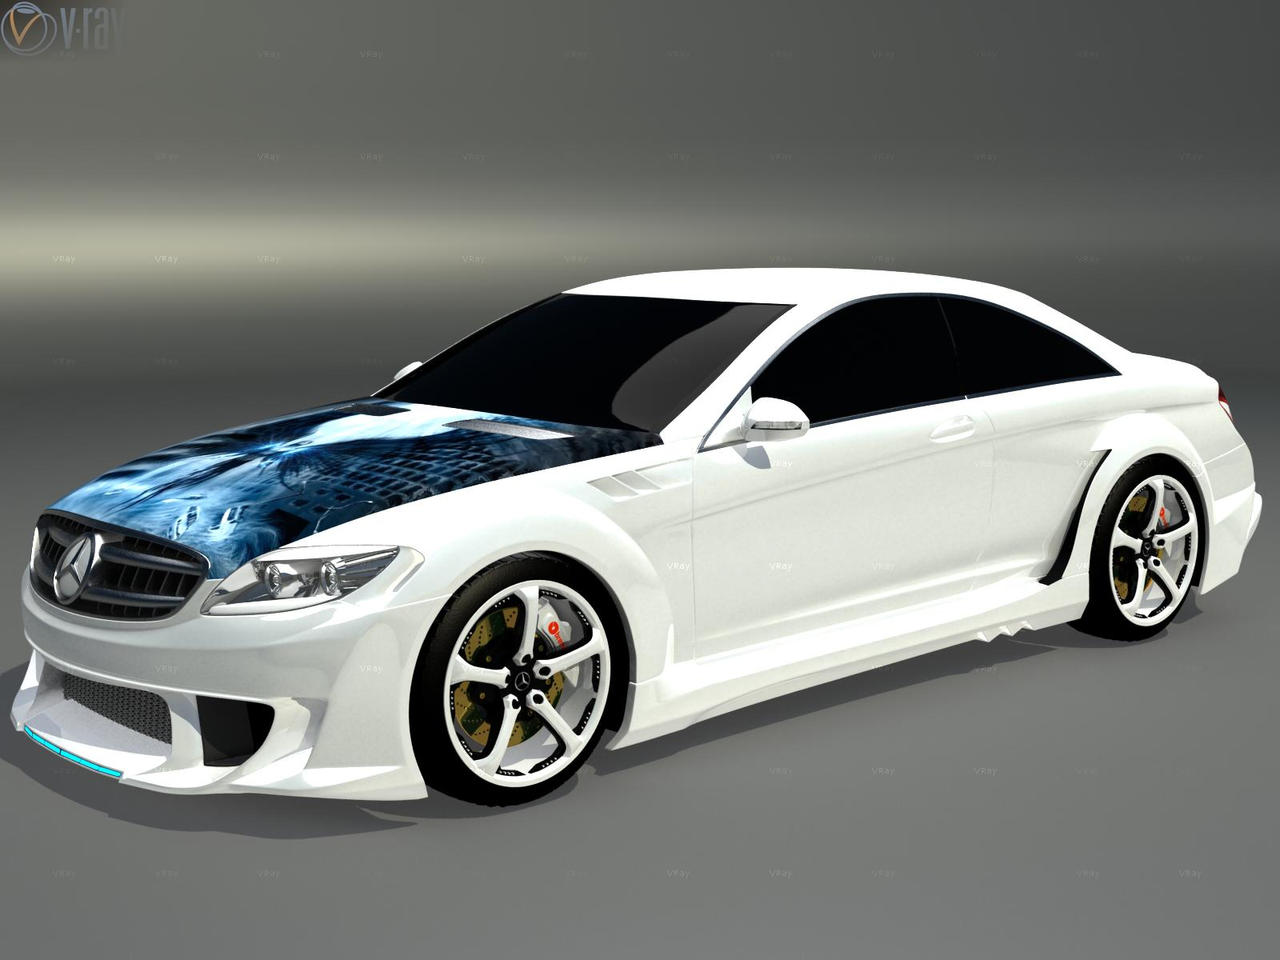 Mercedes benz cl 500 tuning by faith120 on deviantart for Mercedes benz tuners